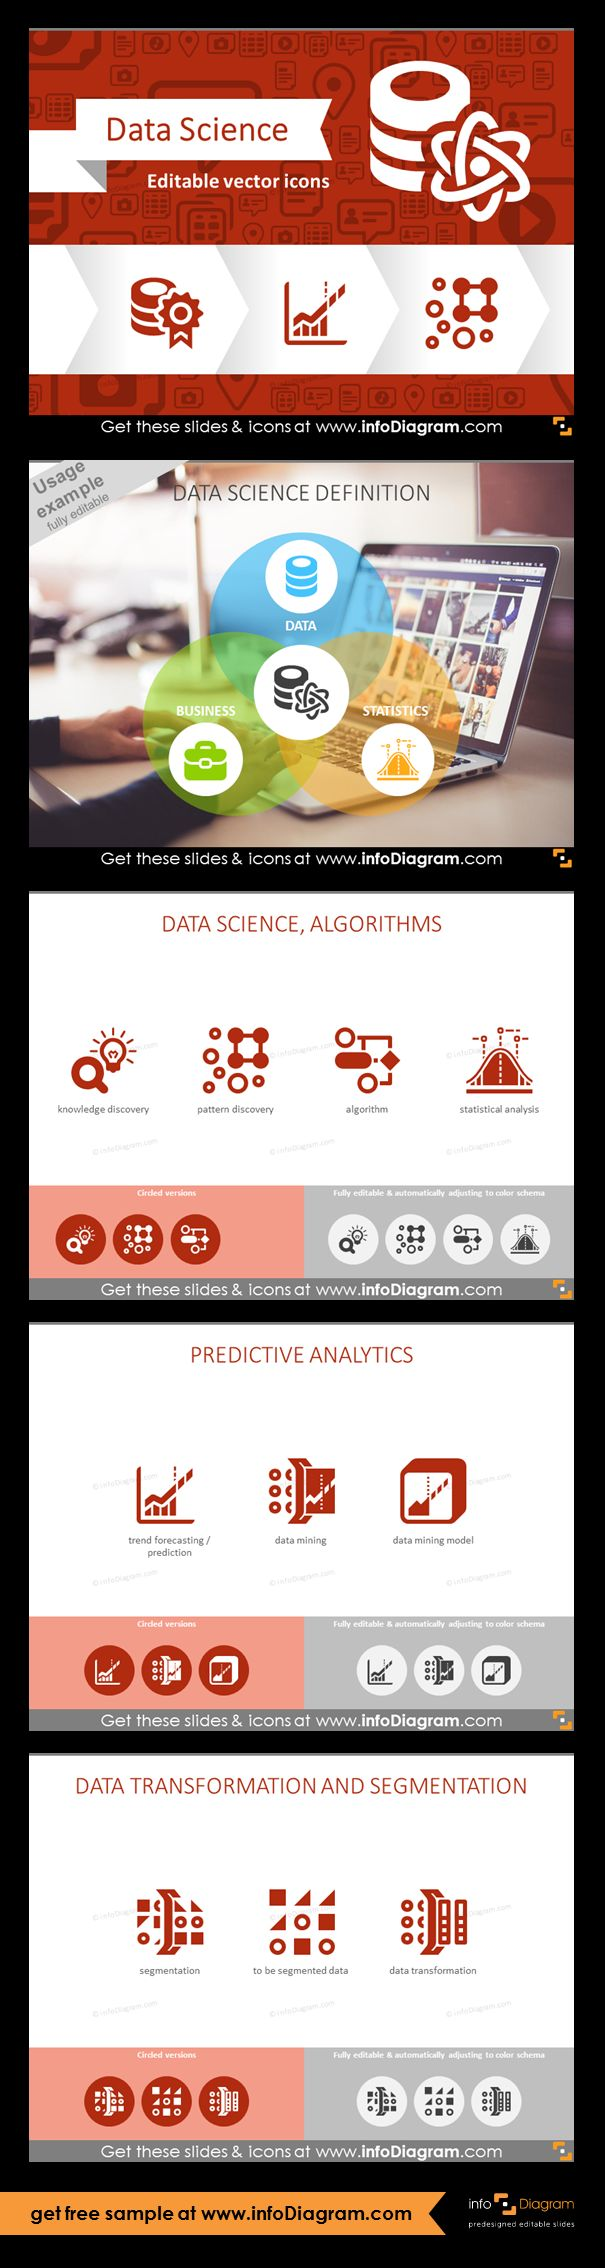 Data Science graphics.  Icons of knowledge discovery, algorithm and statistical analysis. Predictive analytics: trend forecasting and predictions, data mining, modeling. Data transformation and segmentation. Data Science definition: three Data Science components - data, business, statistics.